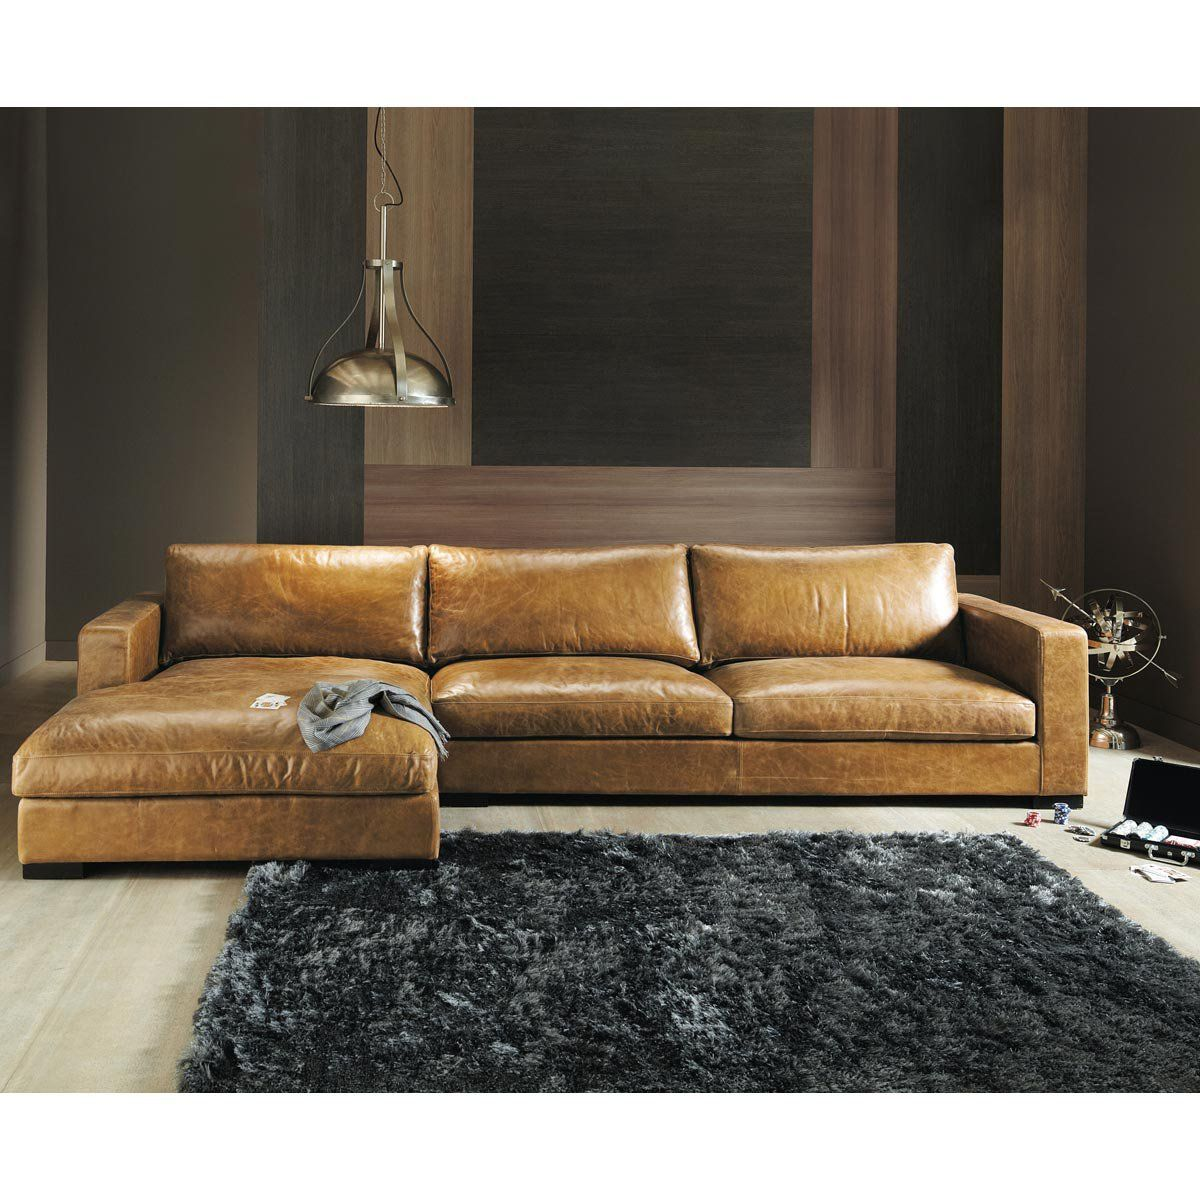 Distressed Leather Corner Sofa Uk Savoy Costco Vintage Brown Sectional Seats 3 4 Lincoln